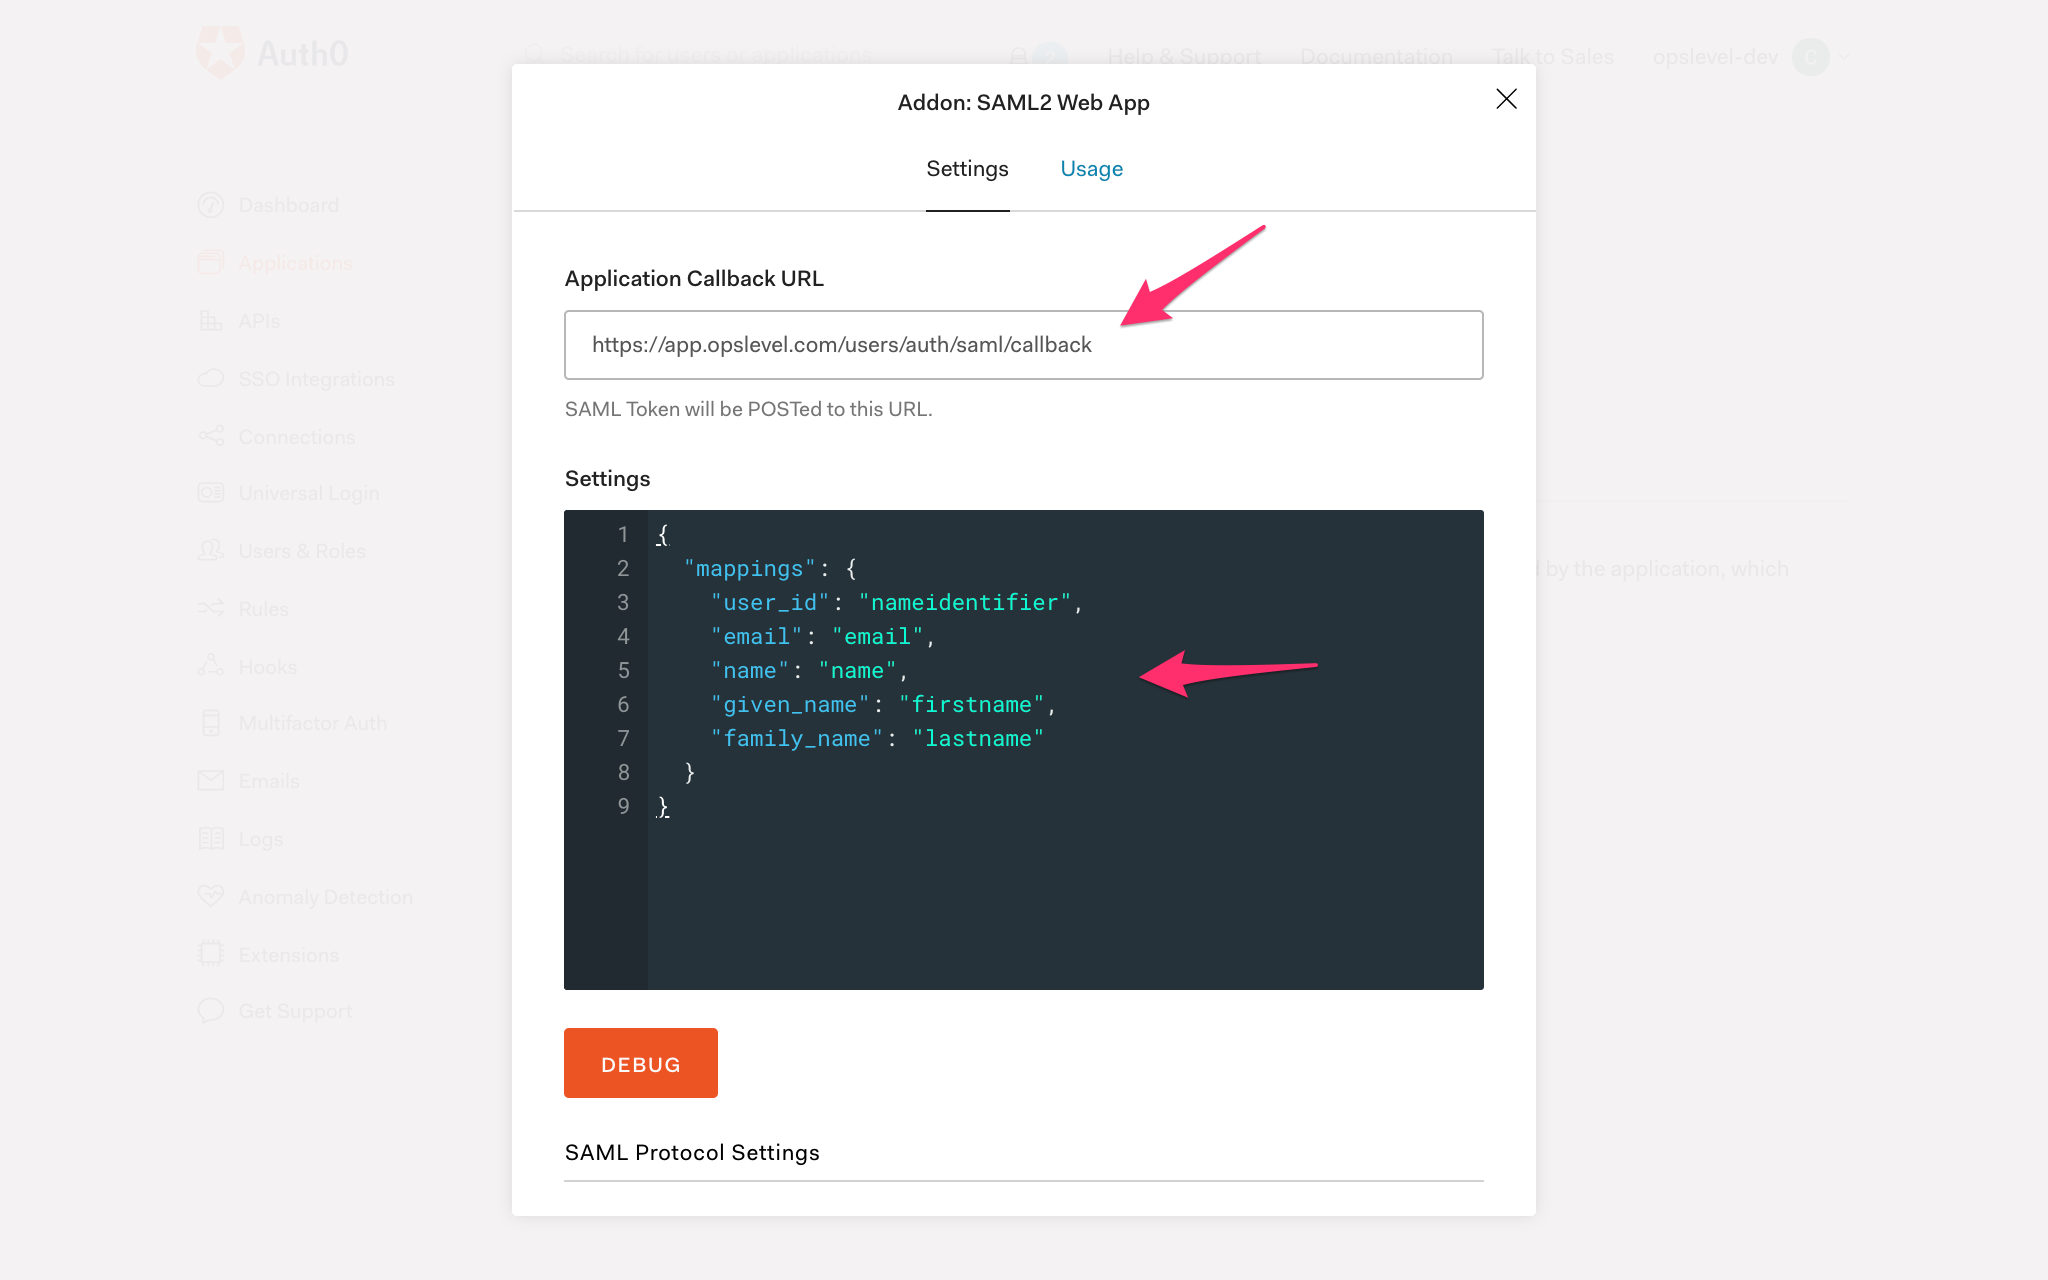 Completed Auth0 SAML2 Settings form